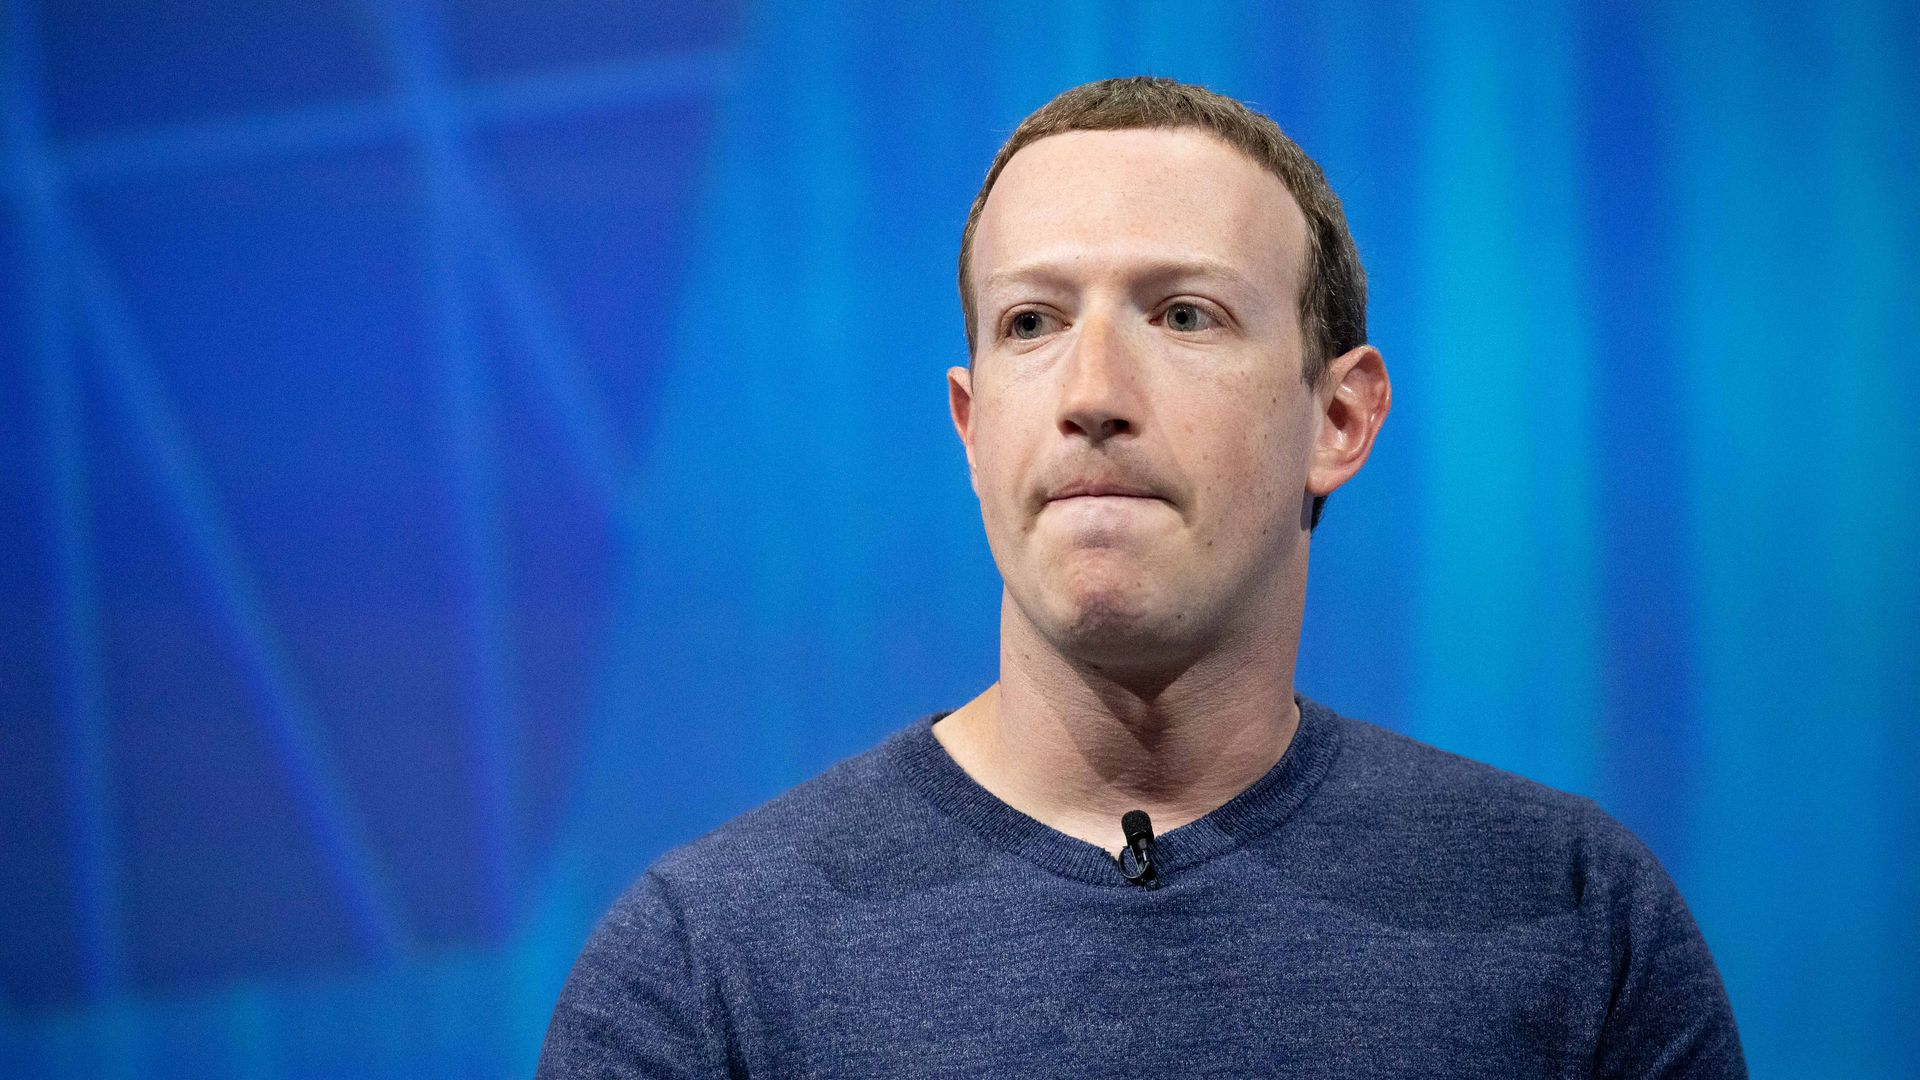 Mark Zuckerberg bites his lip.